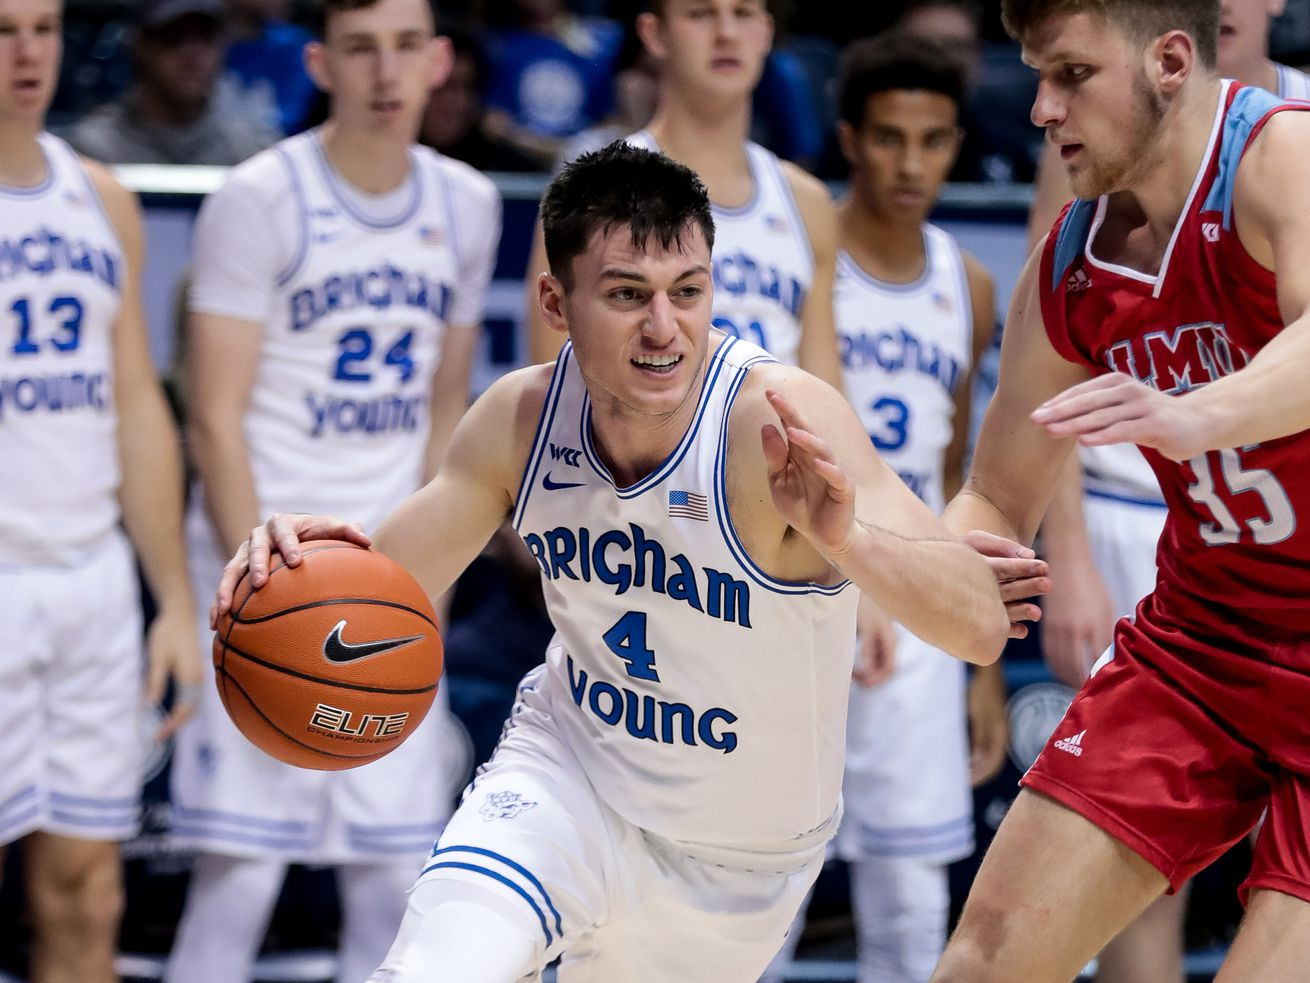 'We're going to be a fun team to watch:' BYU's Alex Barcello looking forward to playing with front court players like Matt Haarms